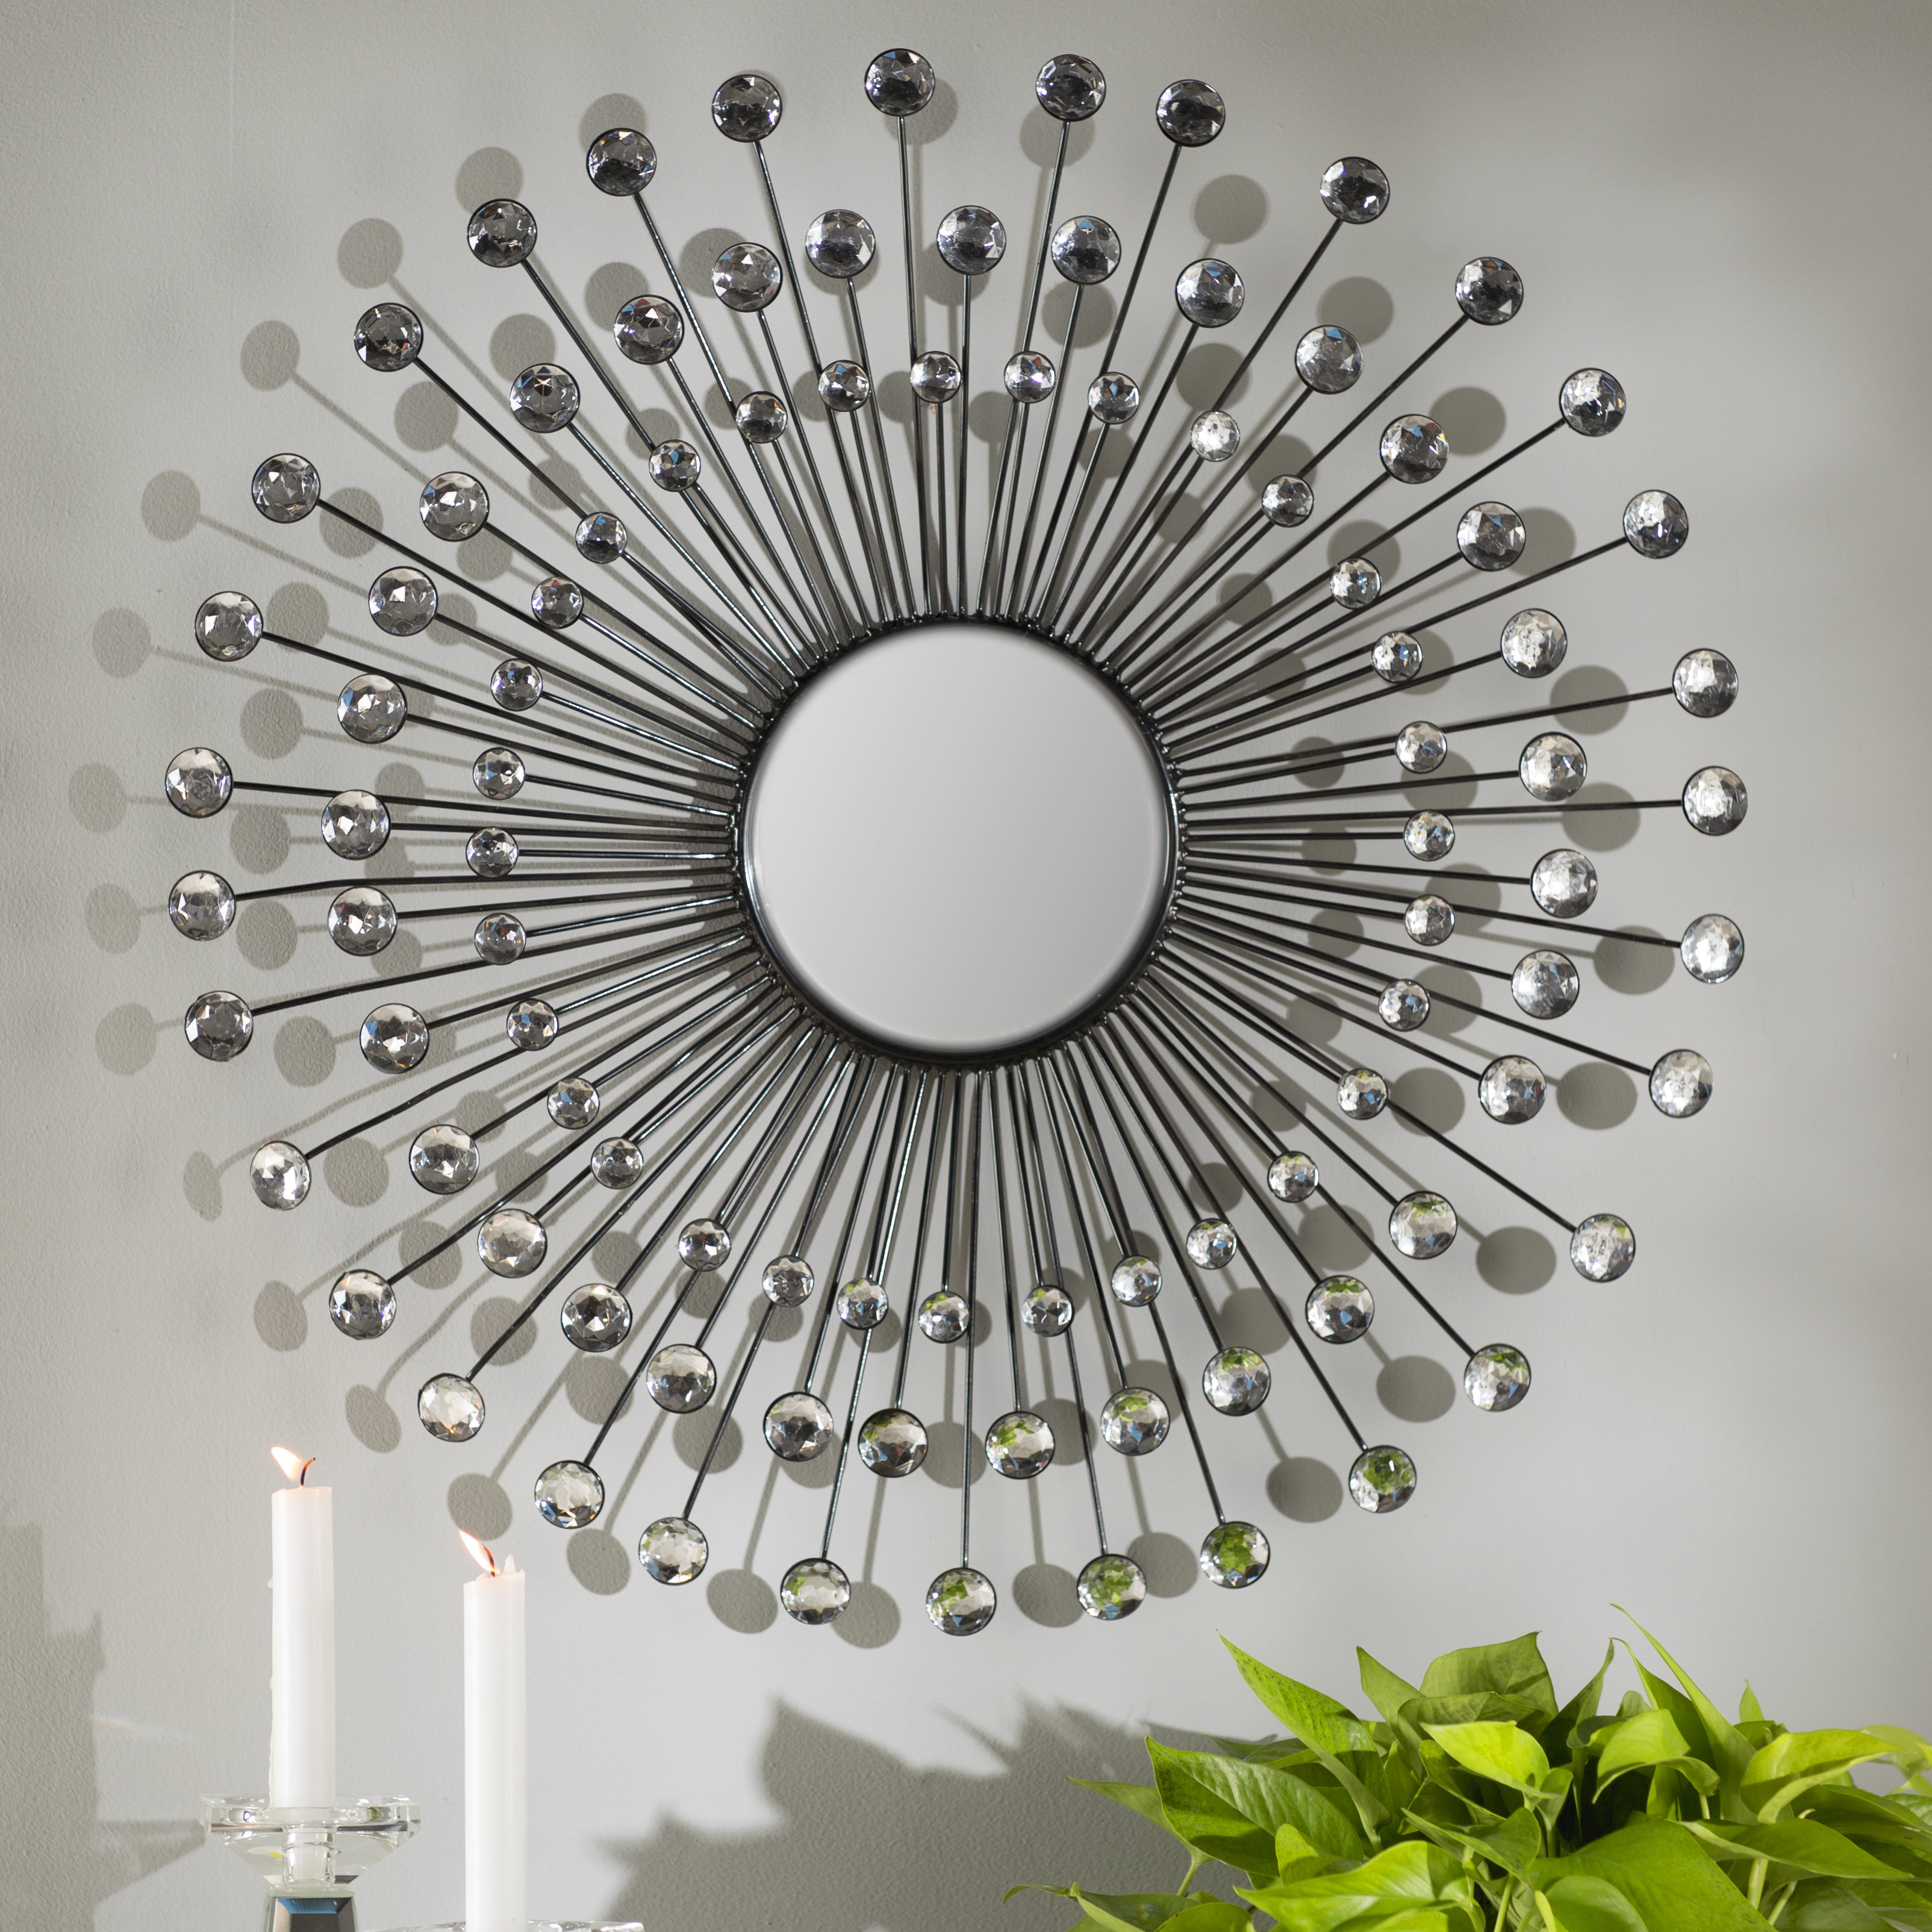 Willa Arlo Interiors Sunburst Mirrors You'll Love In 2019 With Brylee Traditional Sunburst Mirrors (View 12 of 20)